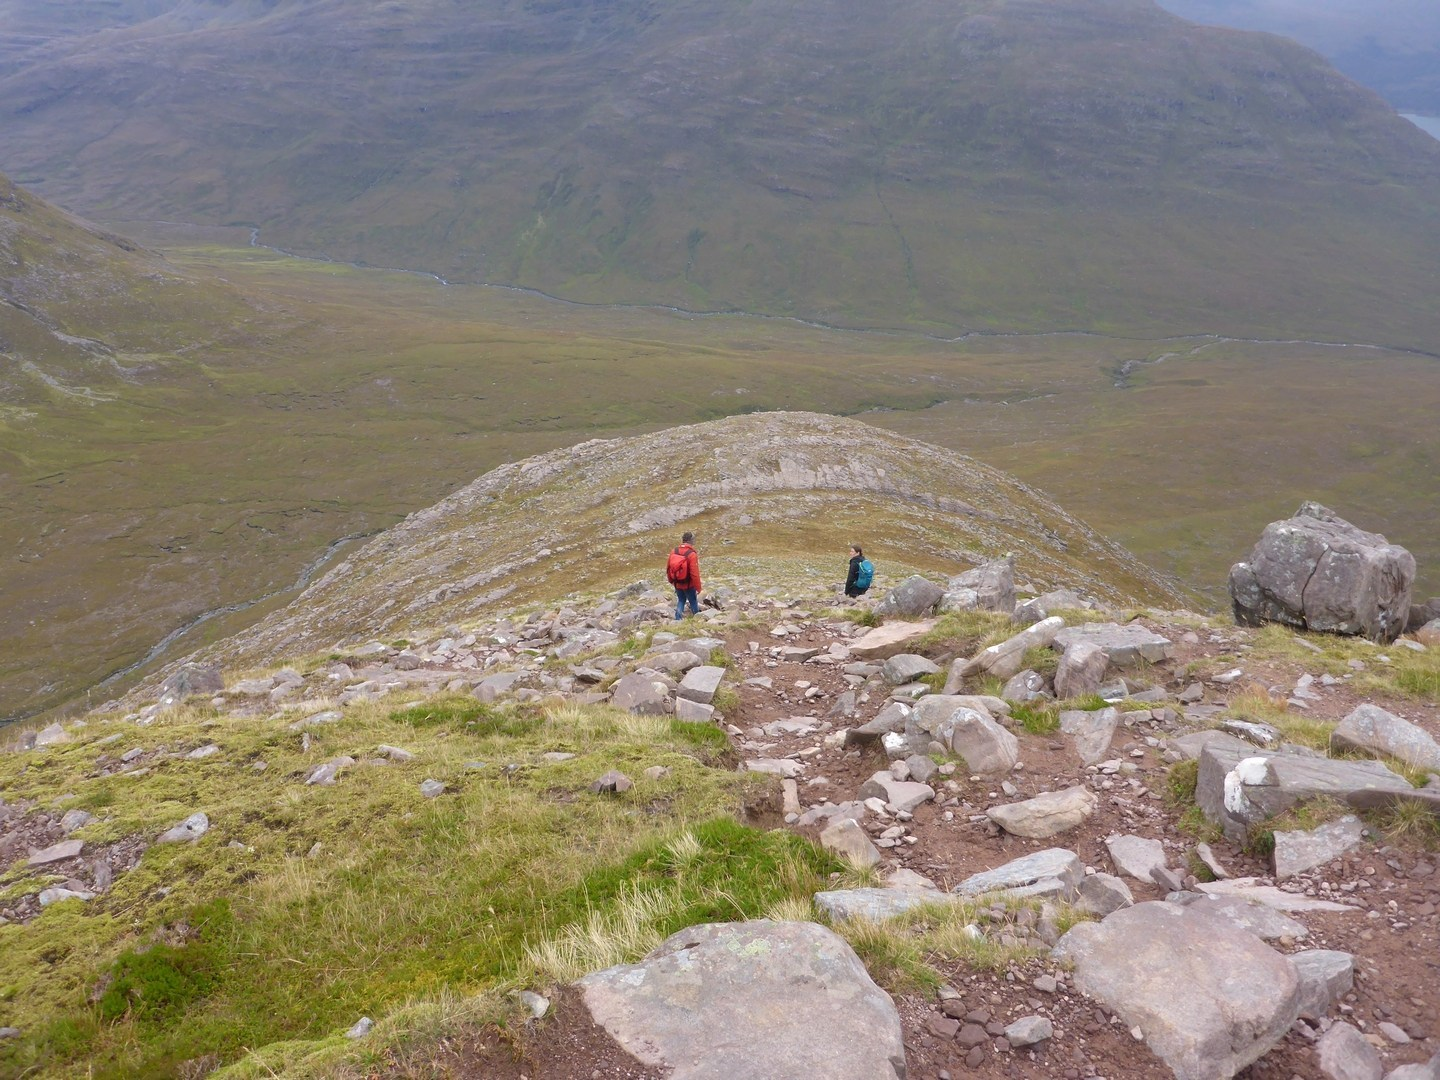 The descent on the south-east ridge